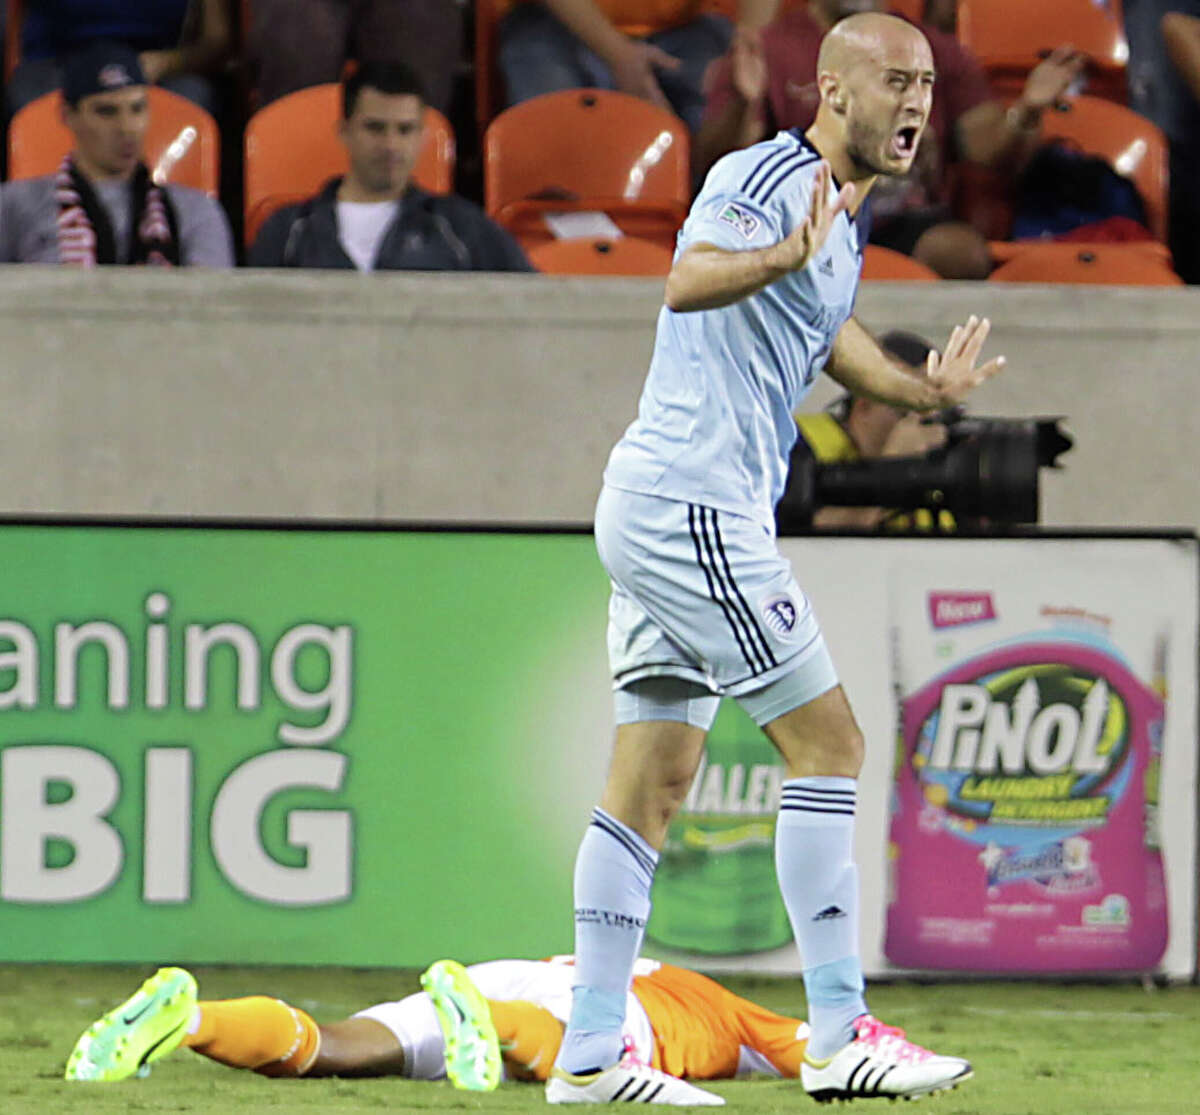 Sporting KC defender Aurelien Collin right, reacts after receiving a yellow card as the Houston Dynamo midfielder Ricardo Clark left, lies on the field during the first half of MLS game action at BBVA Compass Stadium Wednesday, Oct. 9, 2013, in Houston.